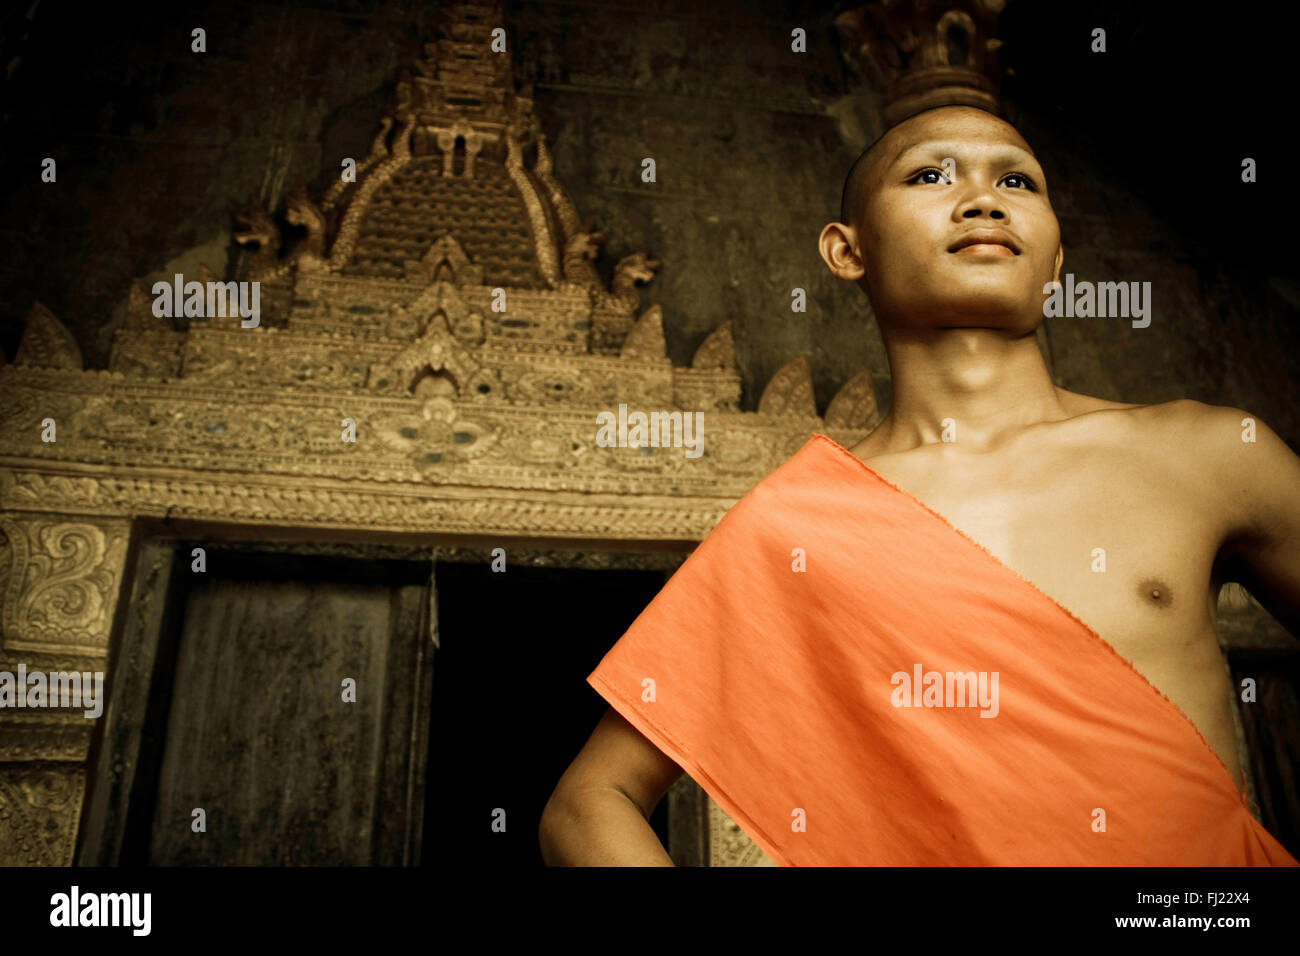 Portrait of bddhist monk in Luang Prabang , Laos, Asia - Stock Image